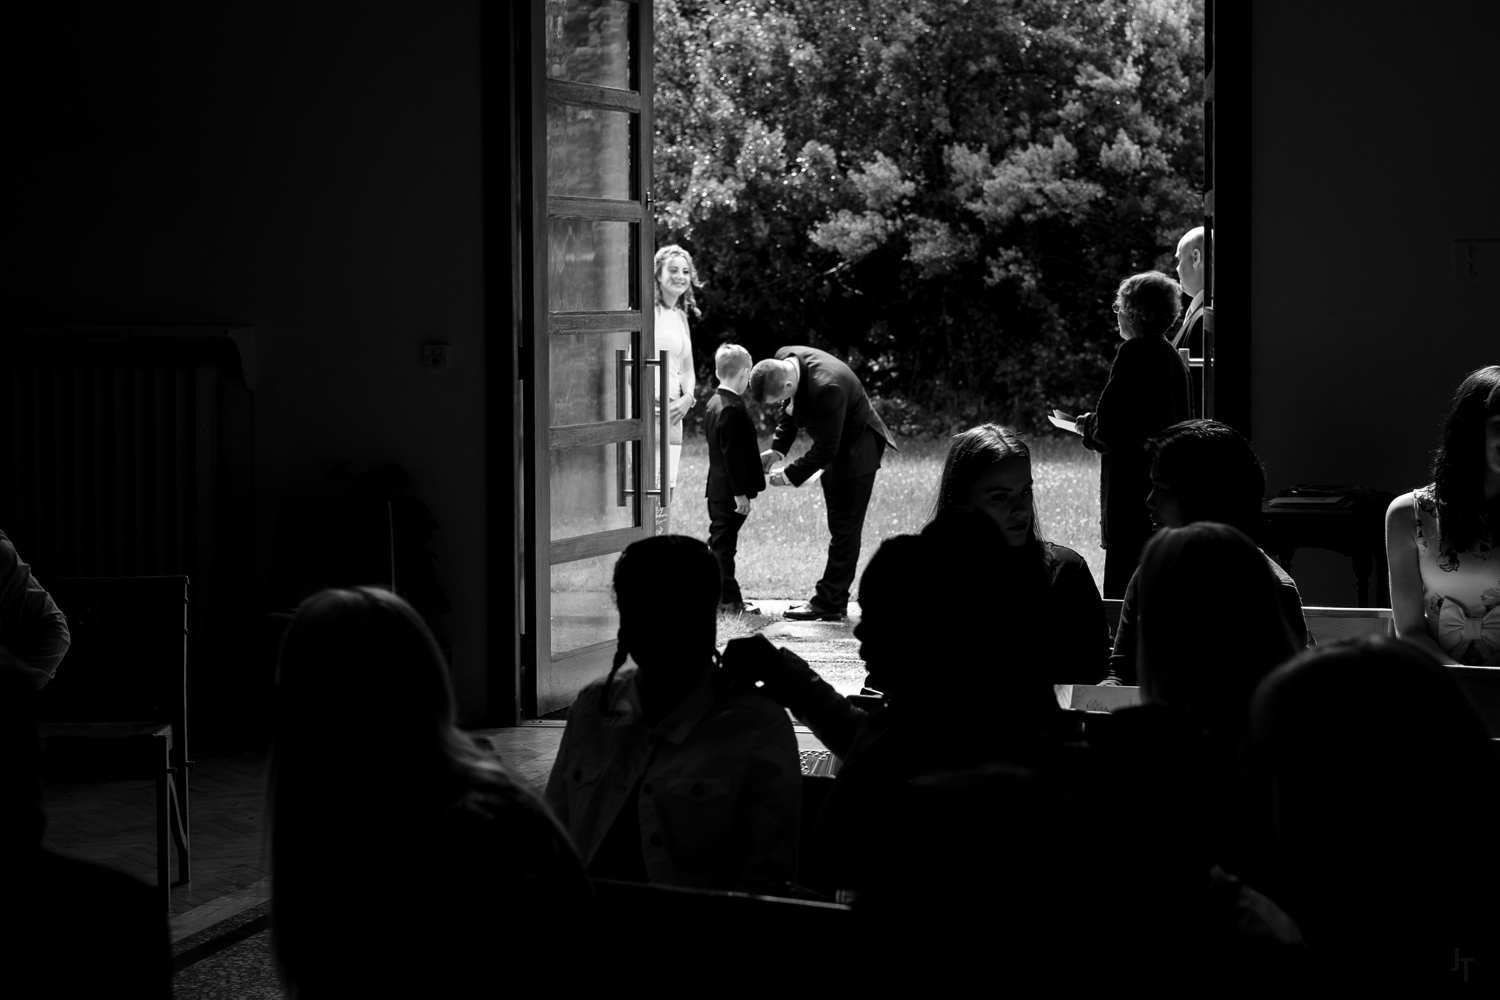 st michael and all angels wedding photography-26.jpg